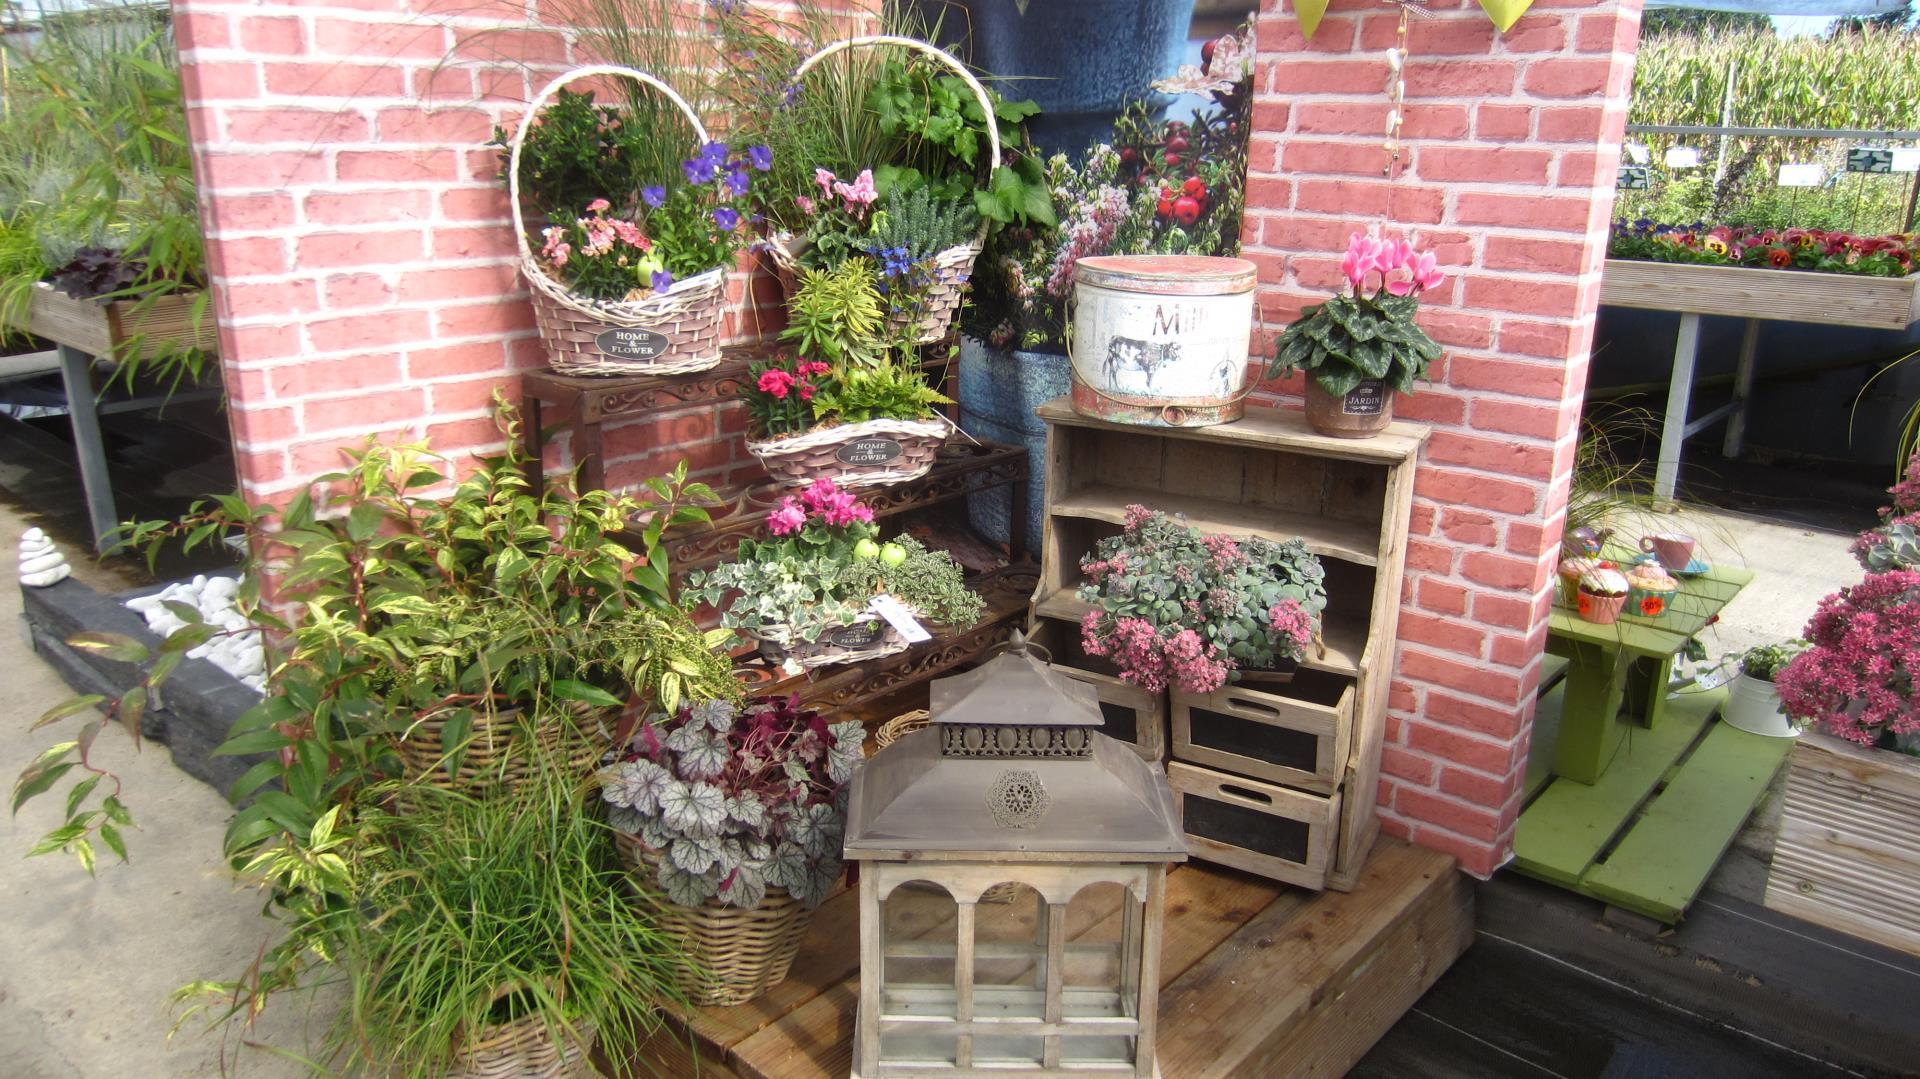 Idee Amenagement Jardin Potager Idees Amenagement Coin De Jardin